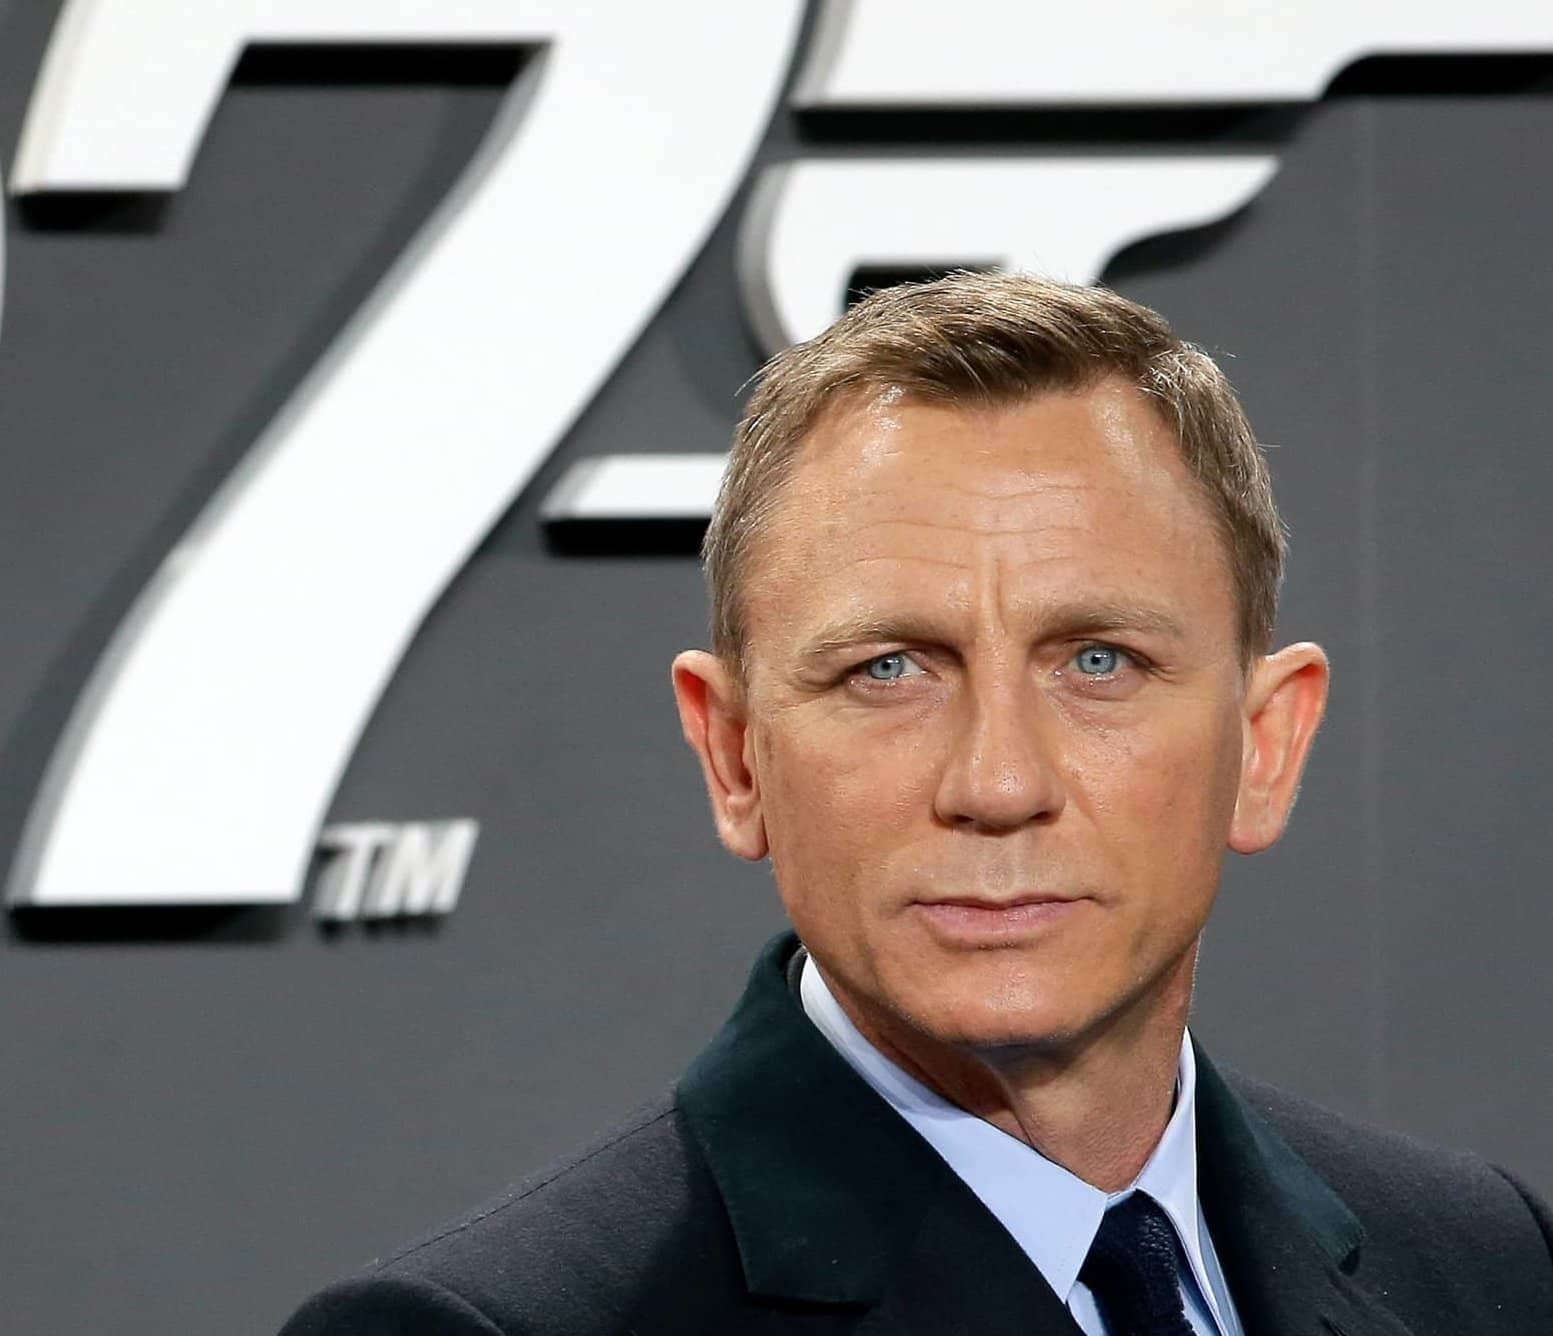 JAMES BOND FILM 'NO TIME TO DIE' PUSHED AGAIN, TO 2021